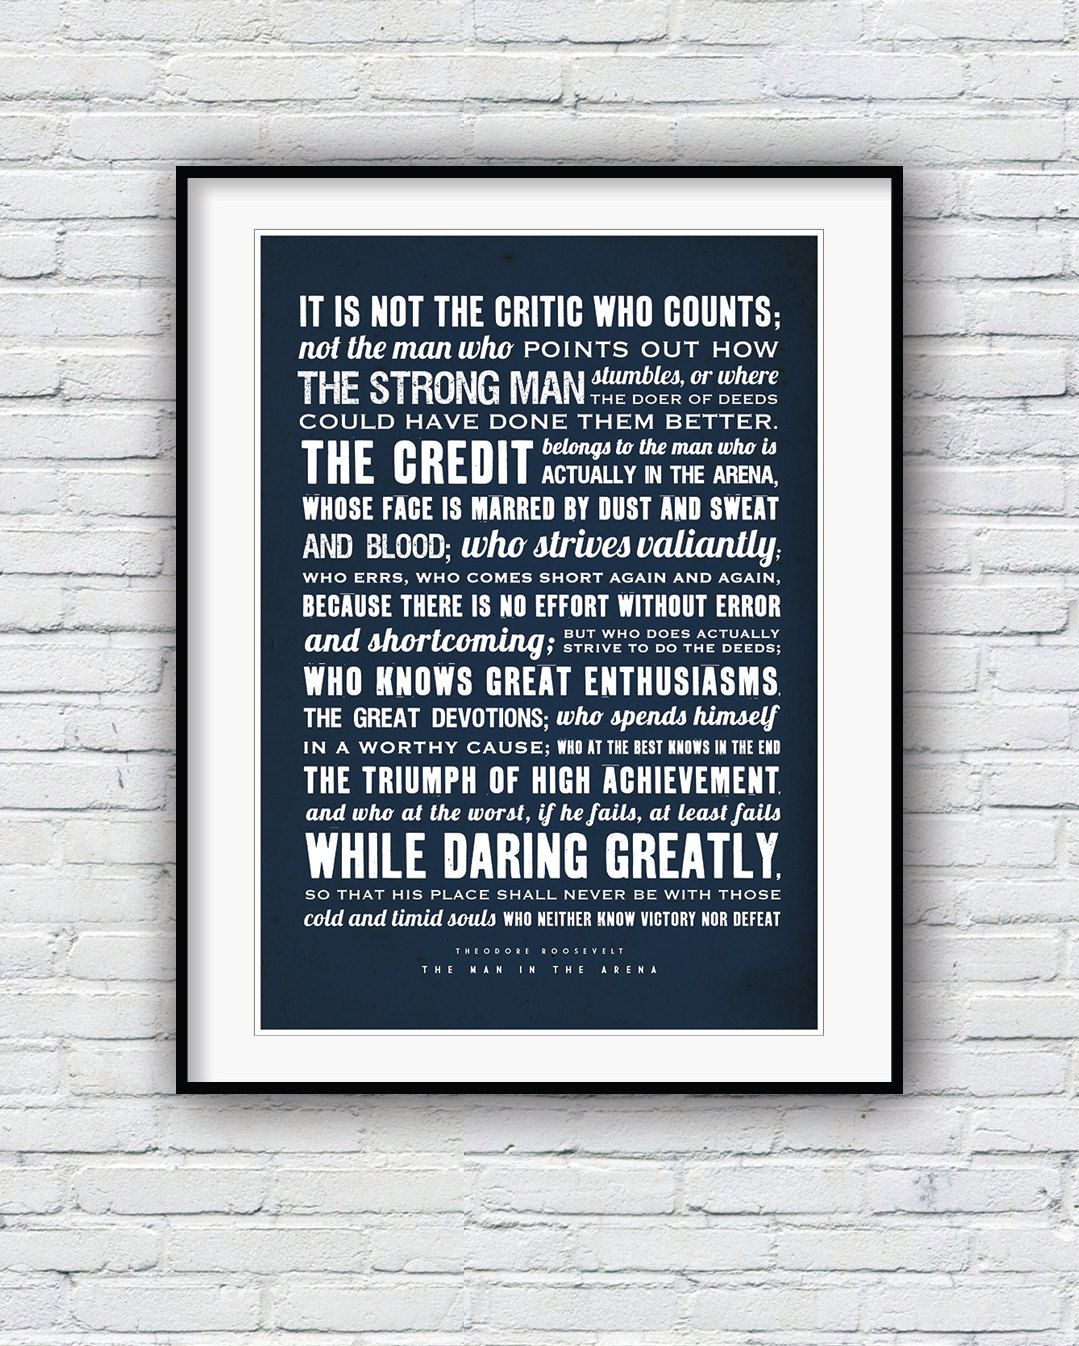 Theodore Roosevelt The Man In The Arena Quote Poster Typographic Print American History Teddy Roosevelt Speech By Redpostbox On Etsy Ht Poster Retro Walle